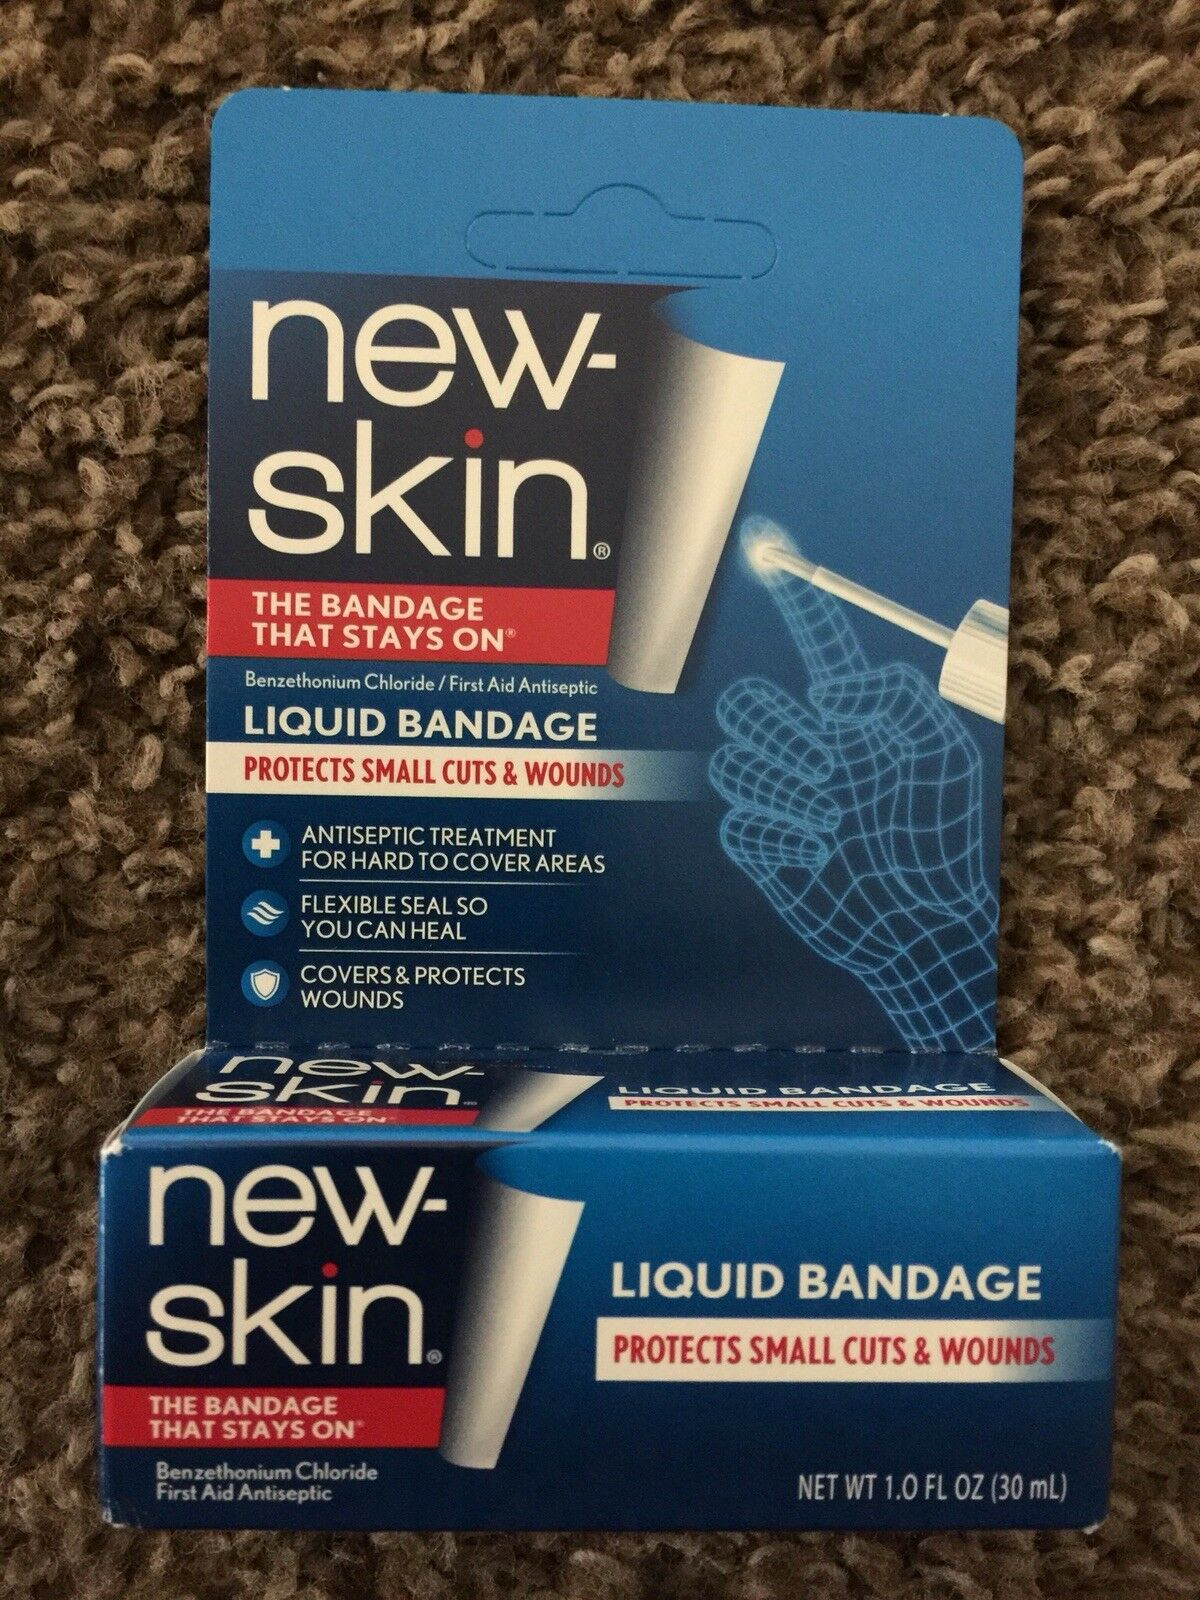 New-Skin First Aid Antiseptic Liquid Bandage 1 fl oz (3